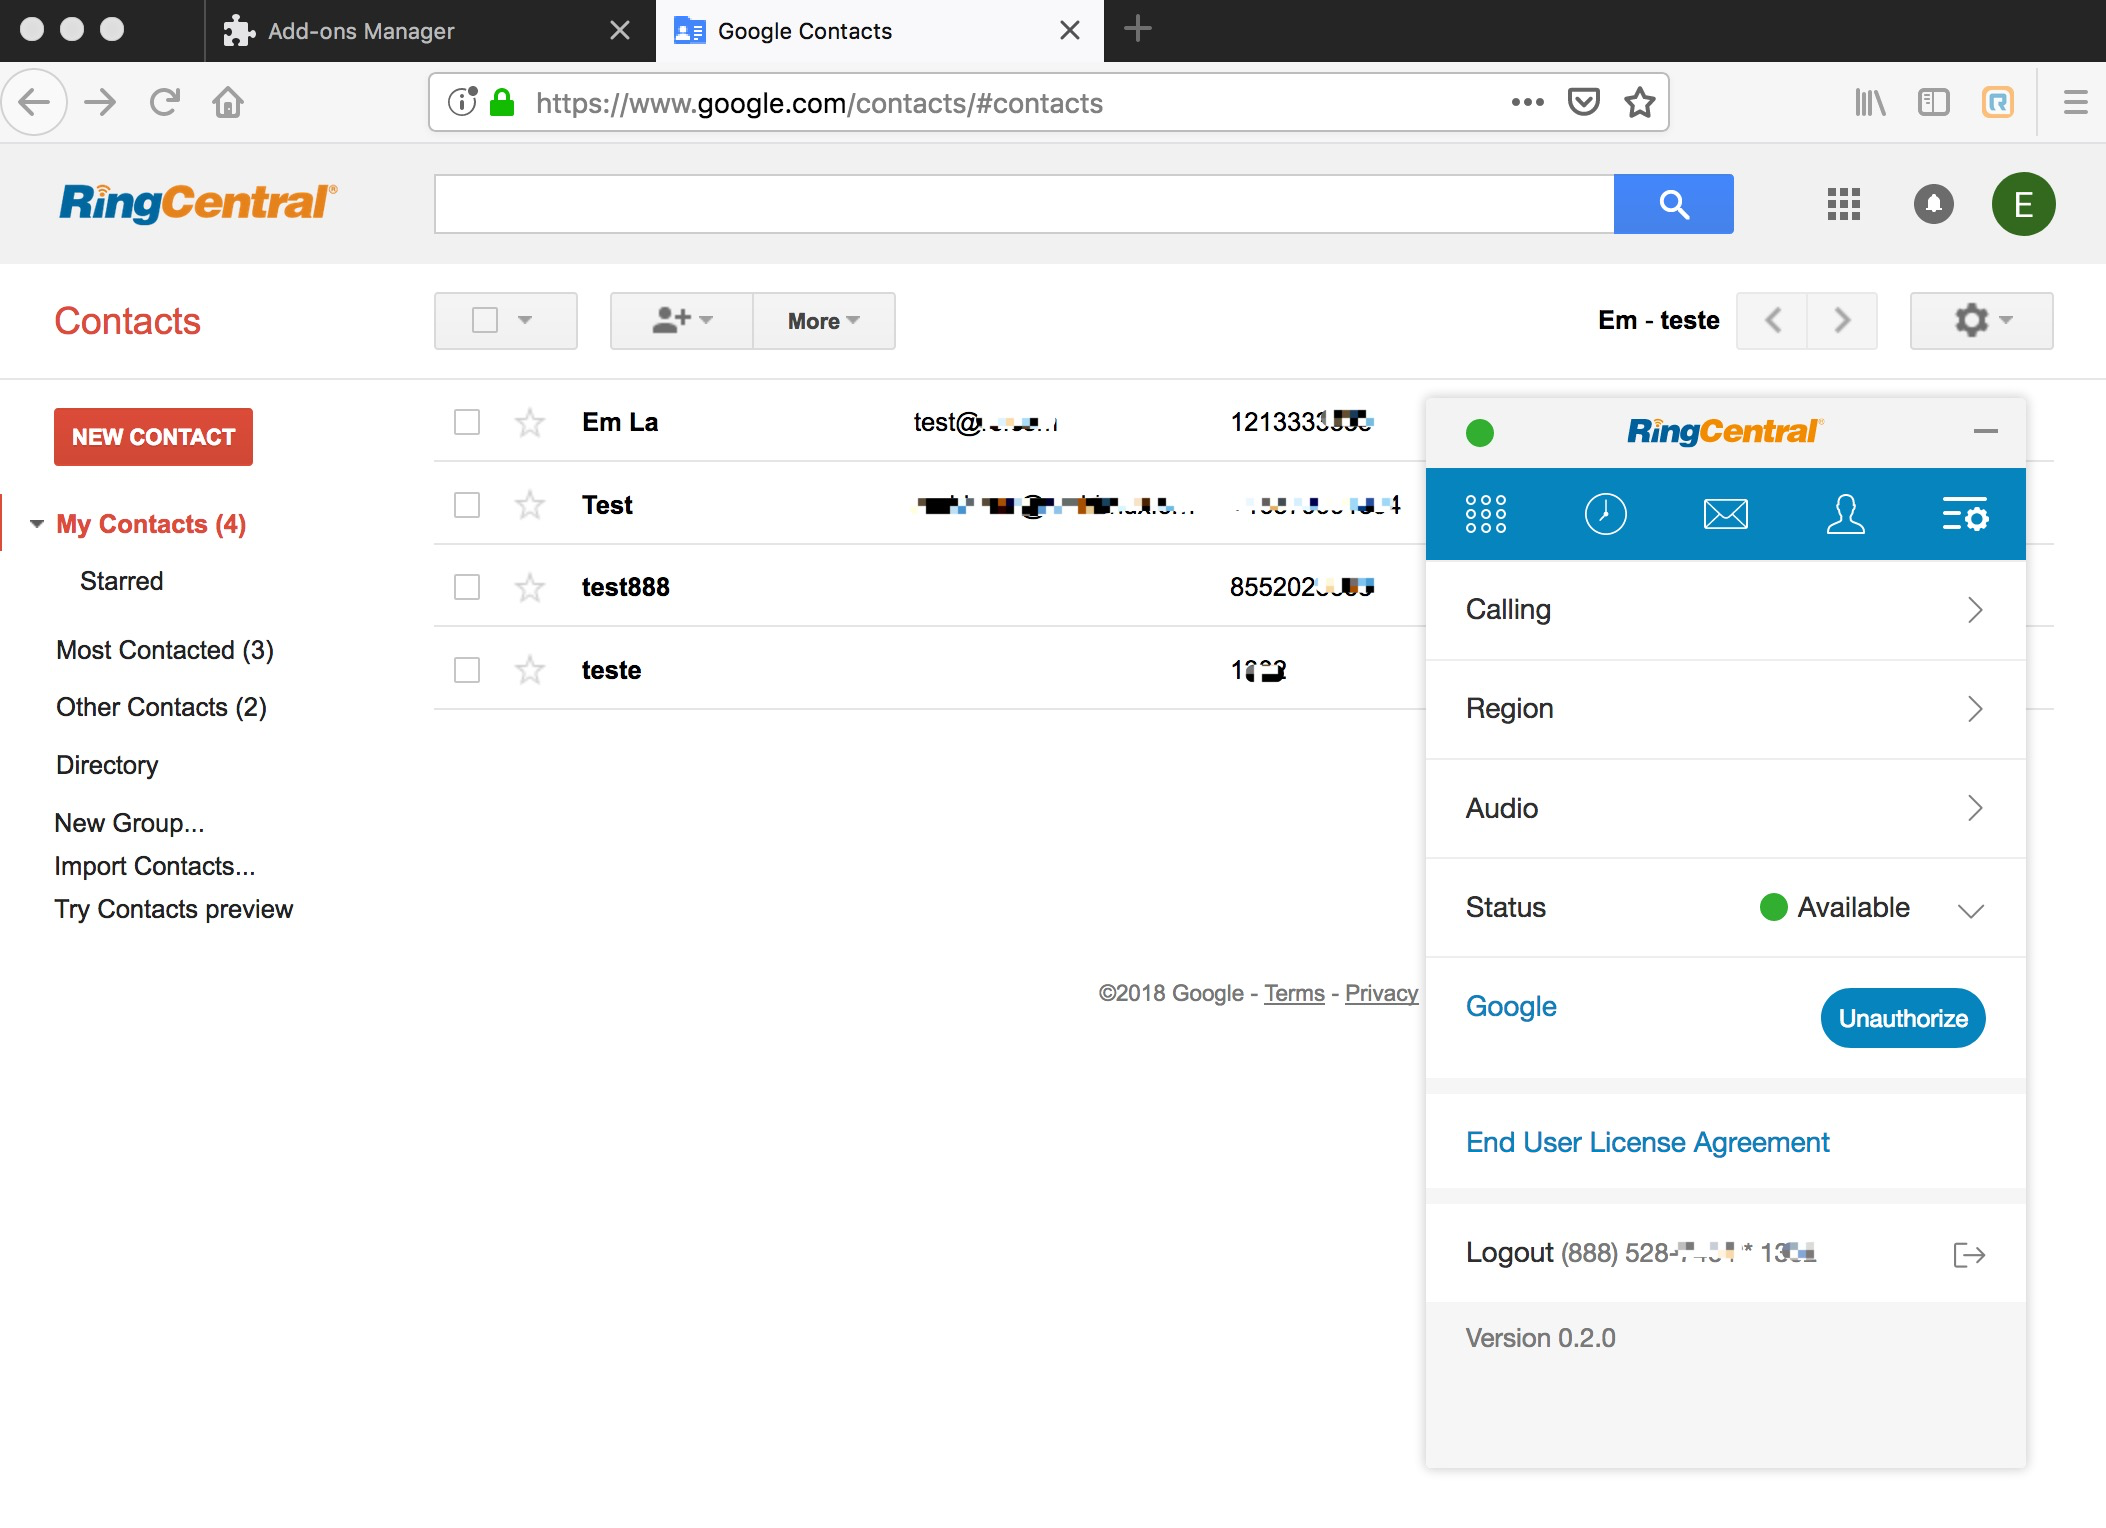 Google Contacts With RingCentral Embeddable